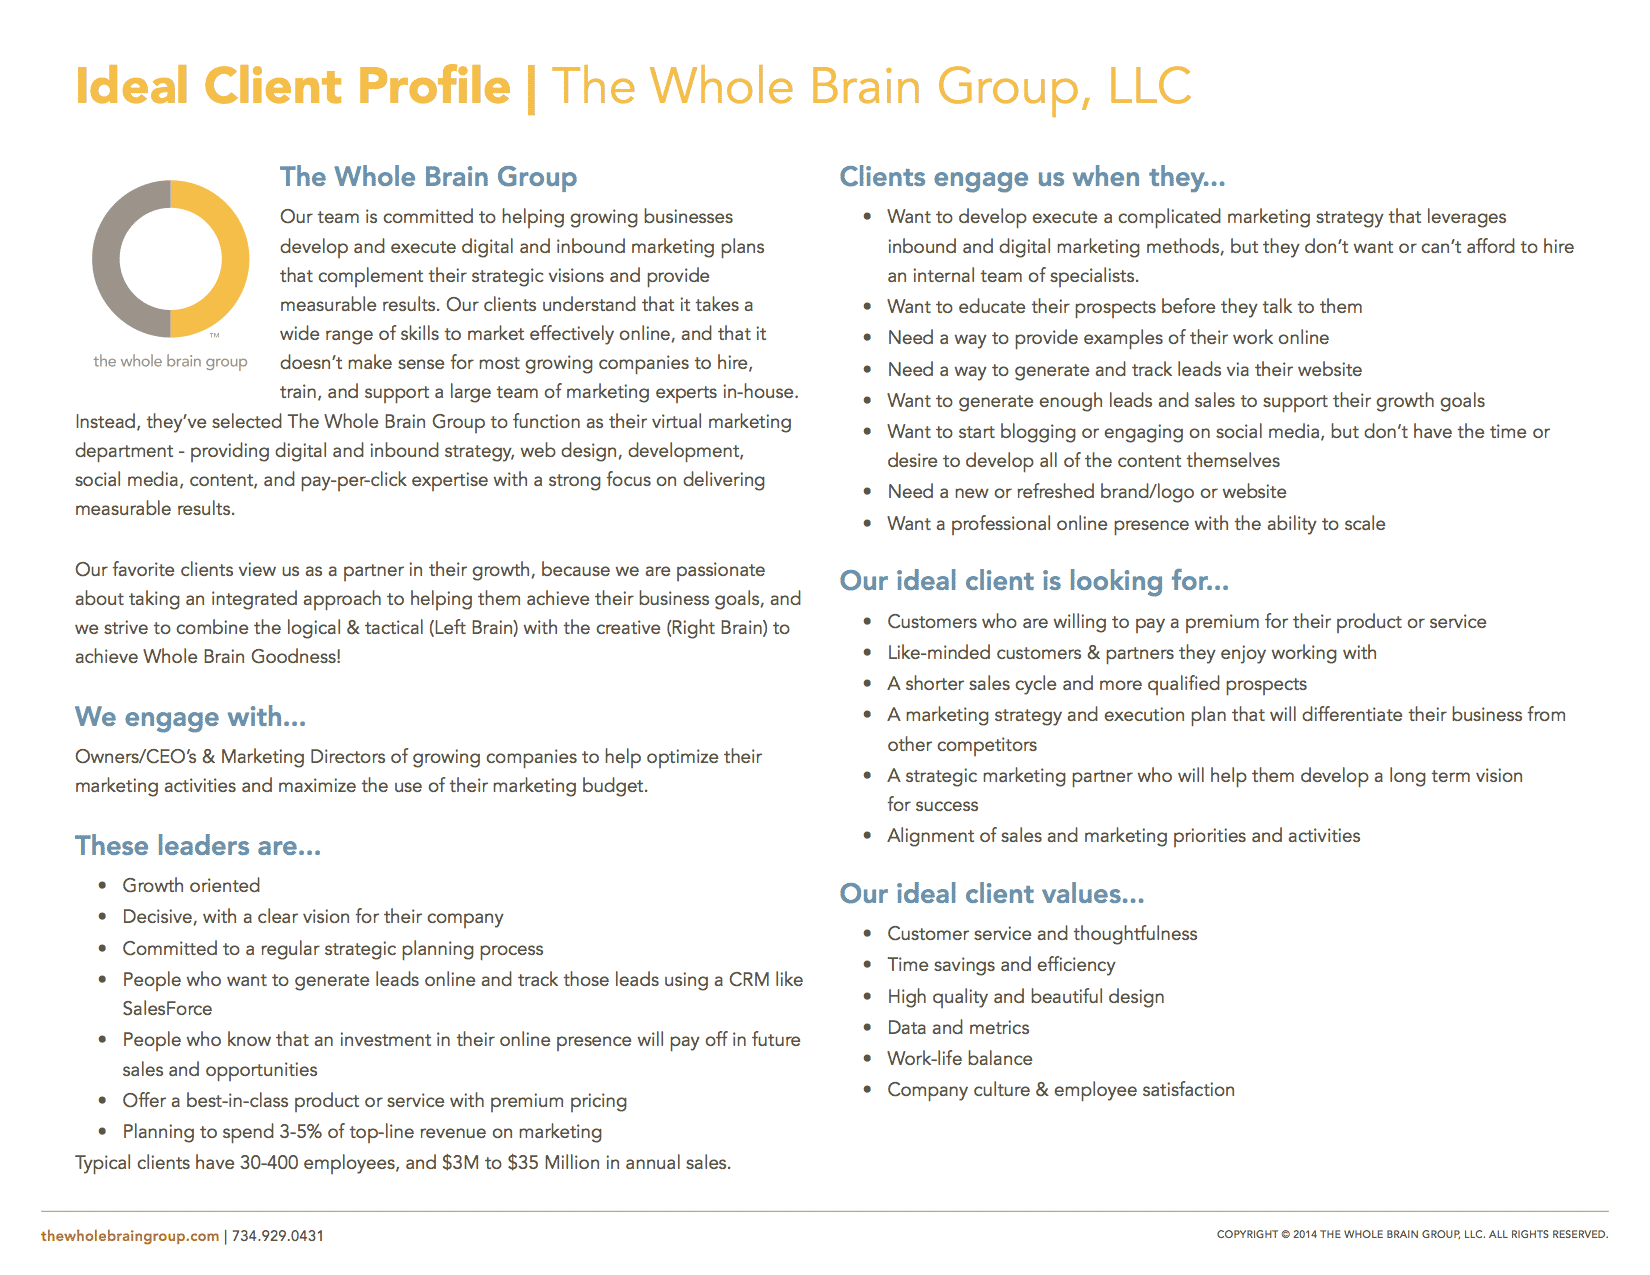 The Whole Brain Group's ideal customer profile